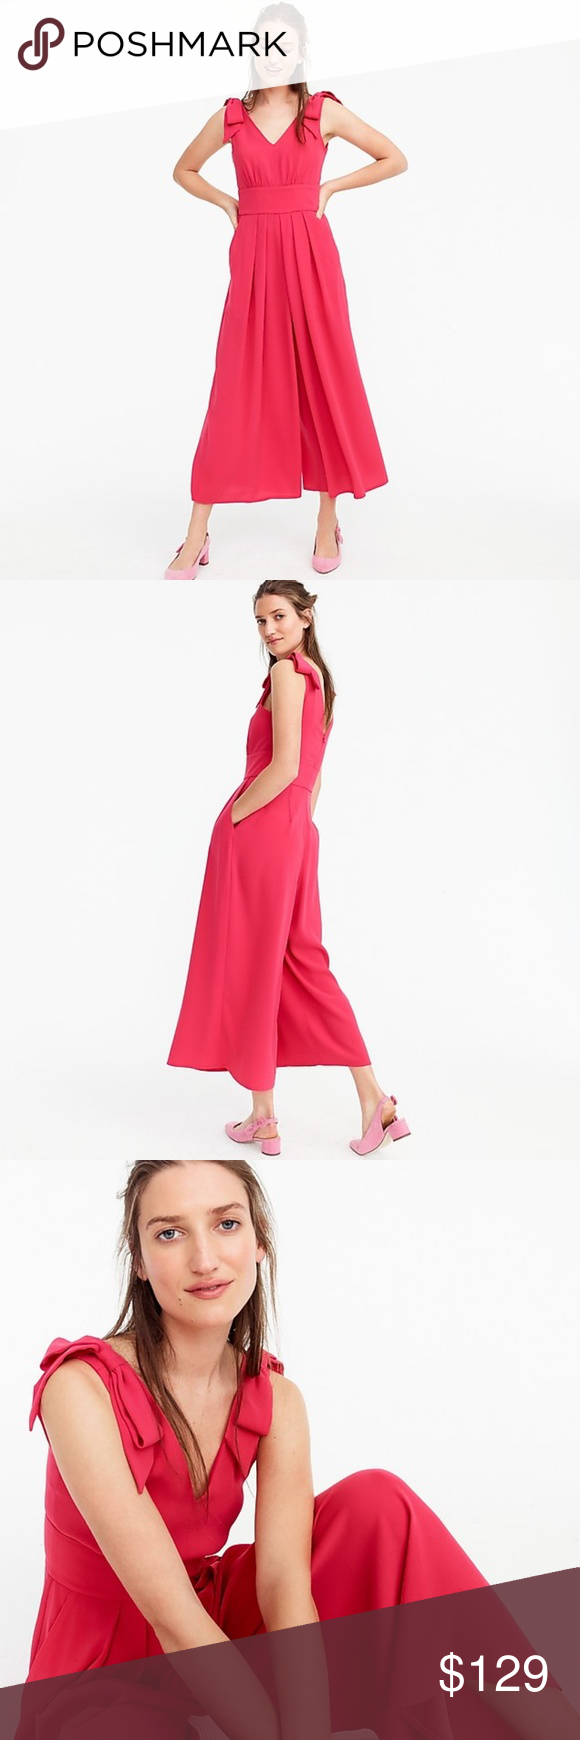 af2979b1fbf NWT Jcrew pink jumpsuit pocket bow size 4 Sold out everywhere! Don t miss  it! Triacetate poly. Machine wash. Item H6297. J. Crew Pants Jumpsuits    Rompers